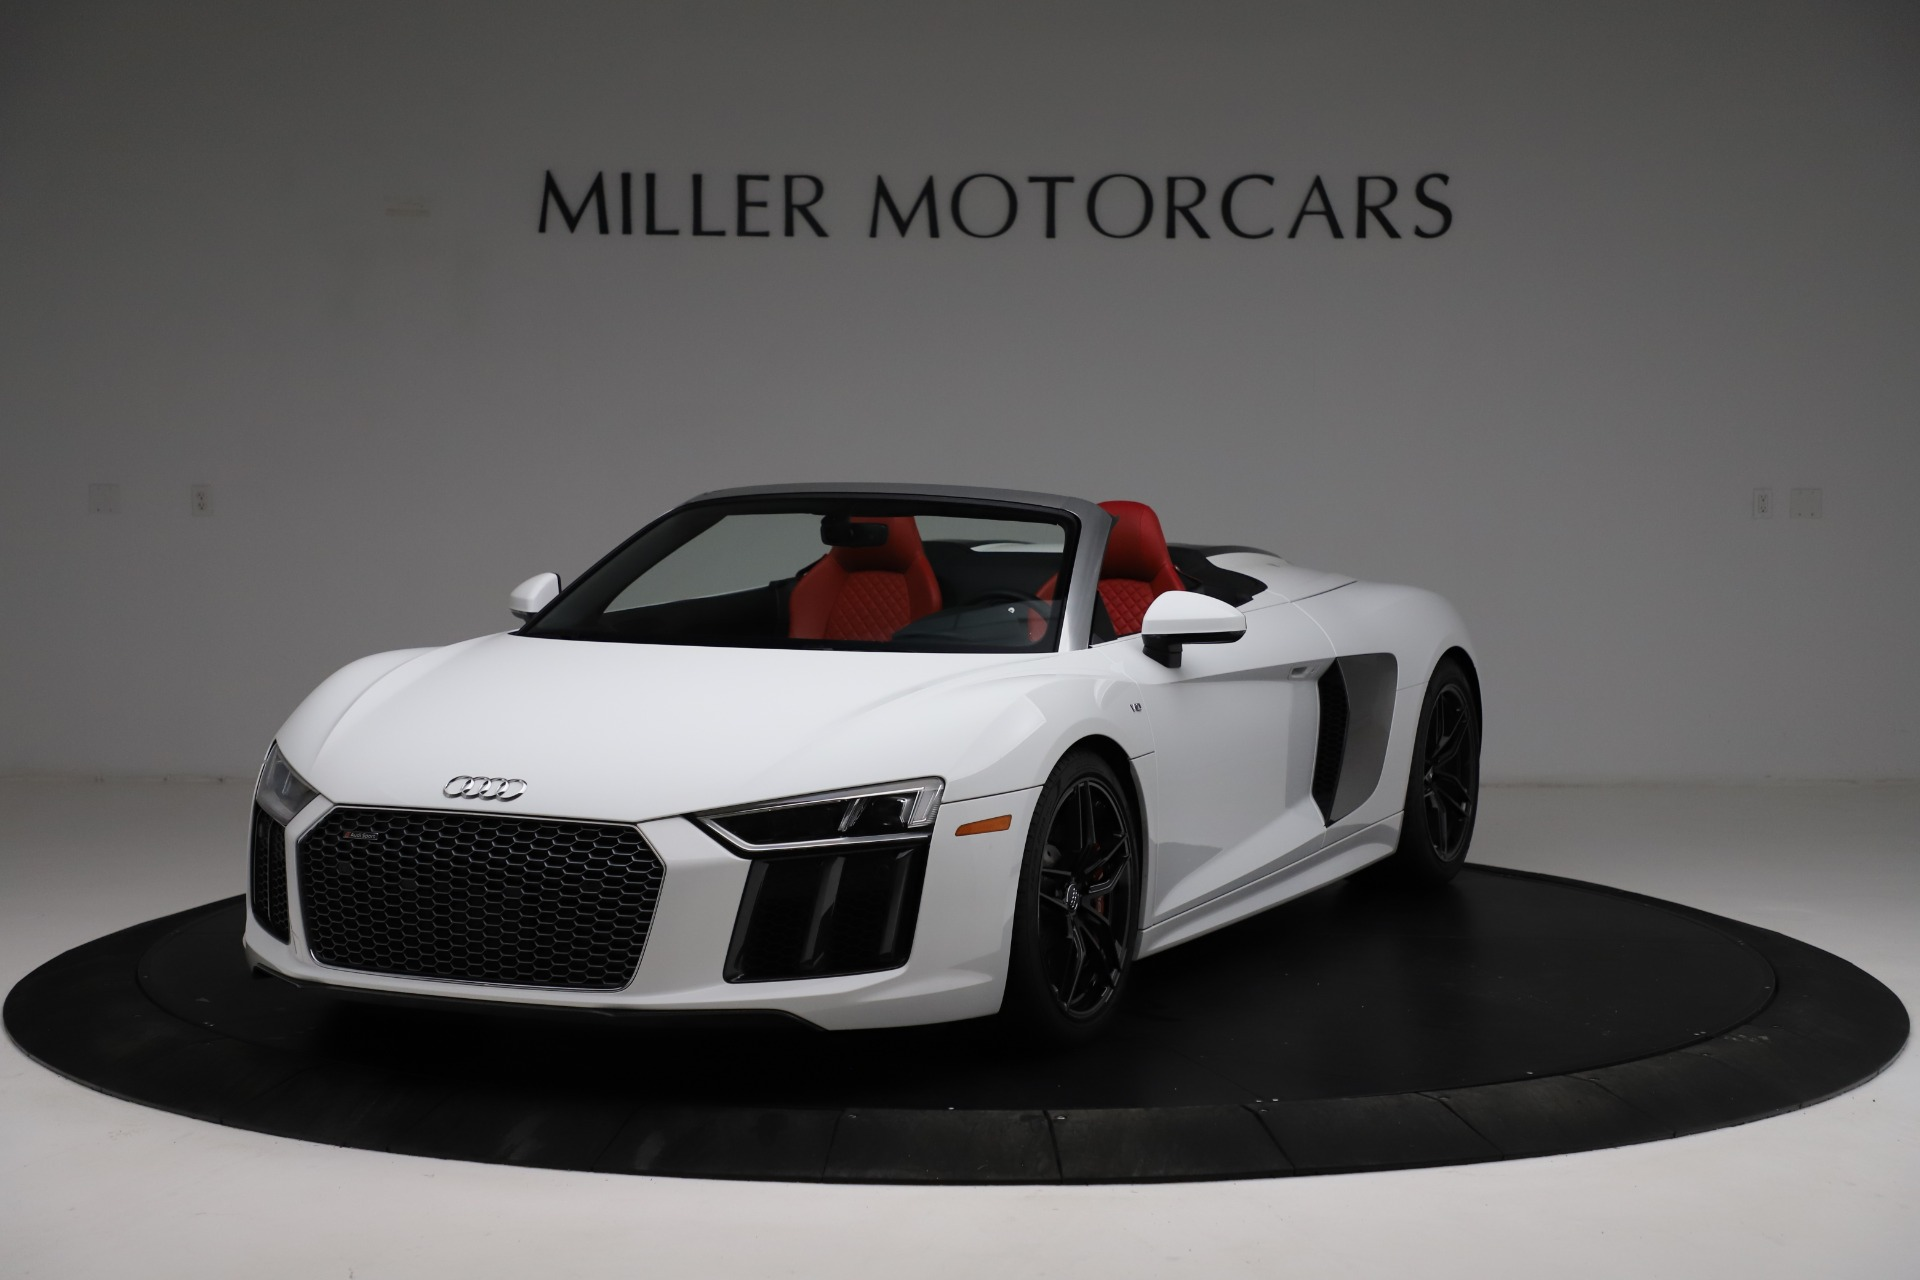 Used 2018 Audi R8 Spyder for sale $154,900 at Pagani of Greenwich in Greenwich CT 06830 1